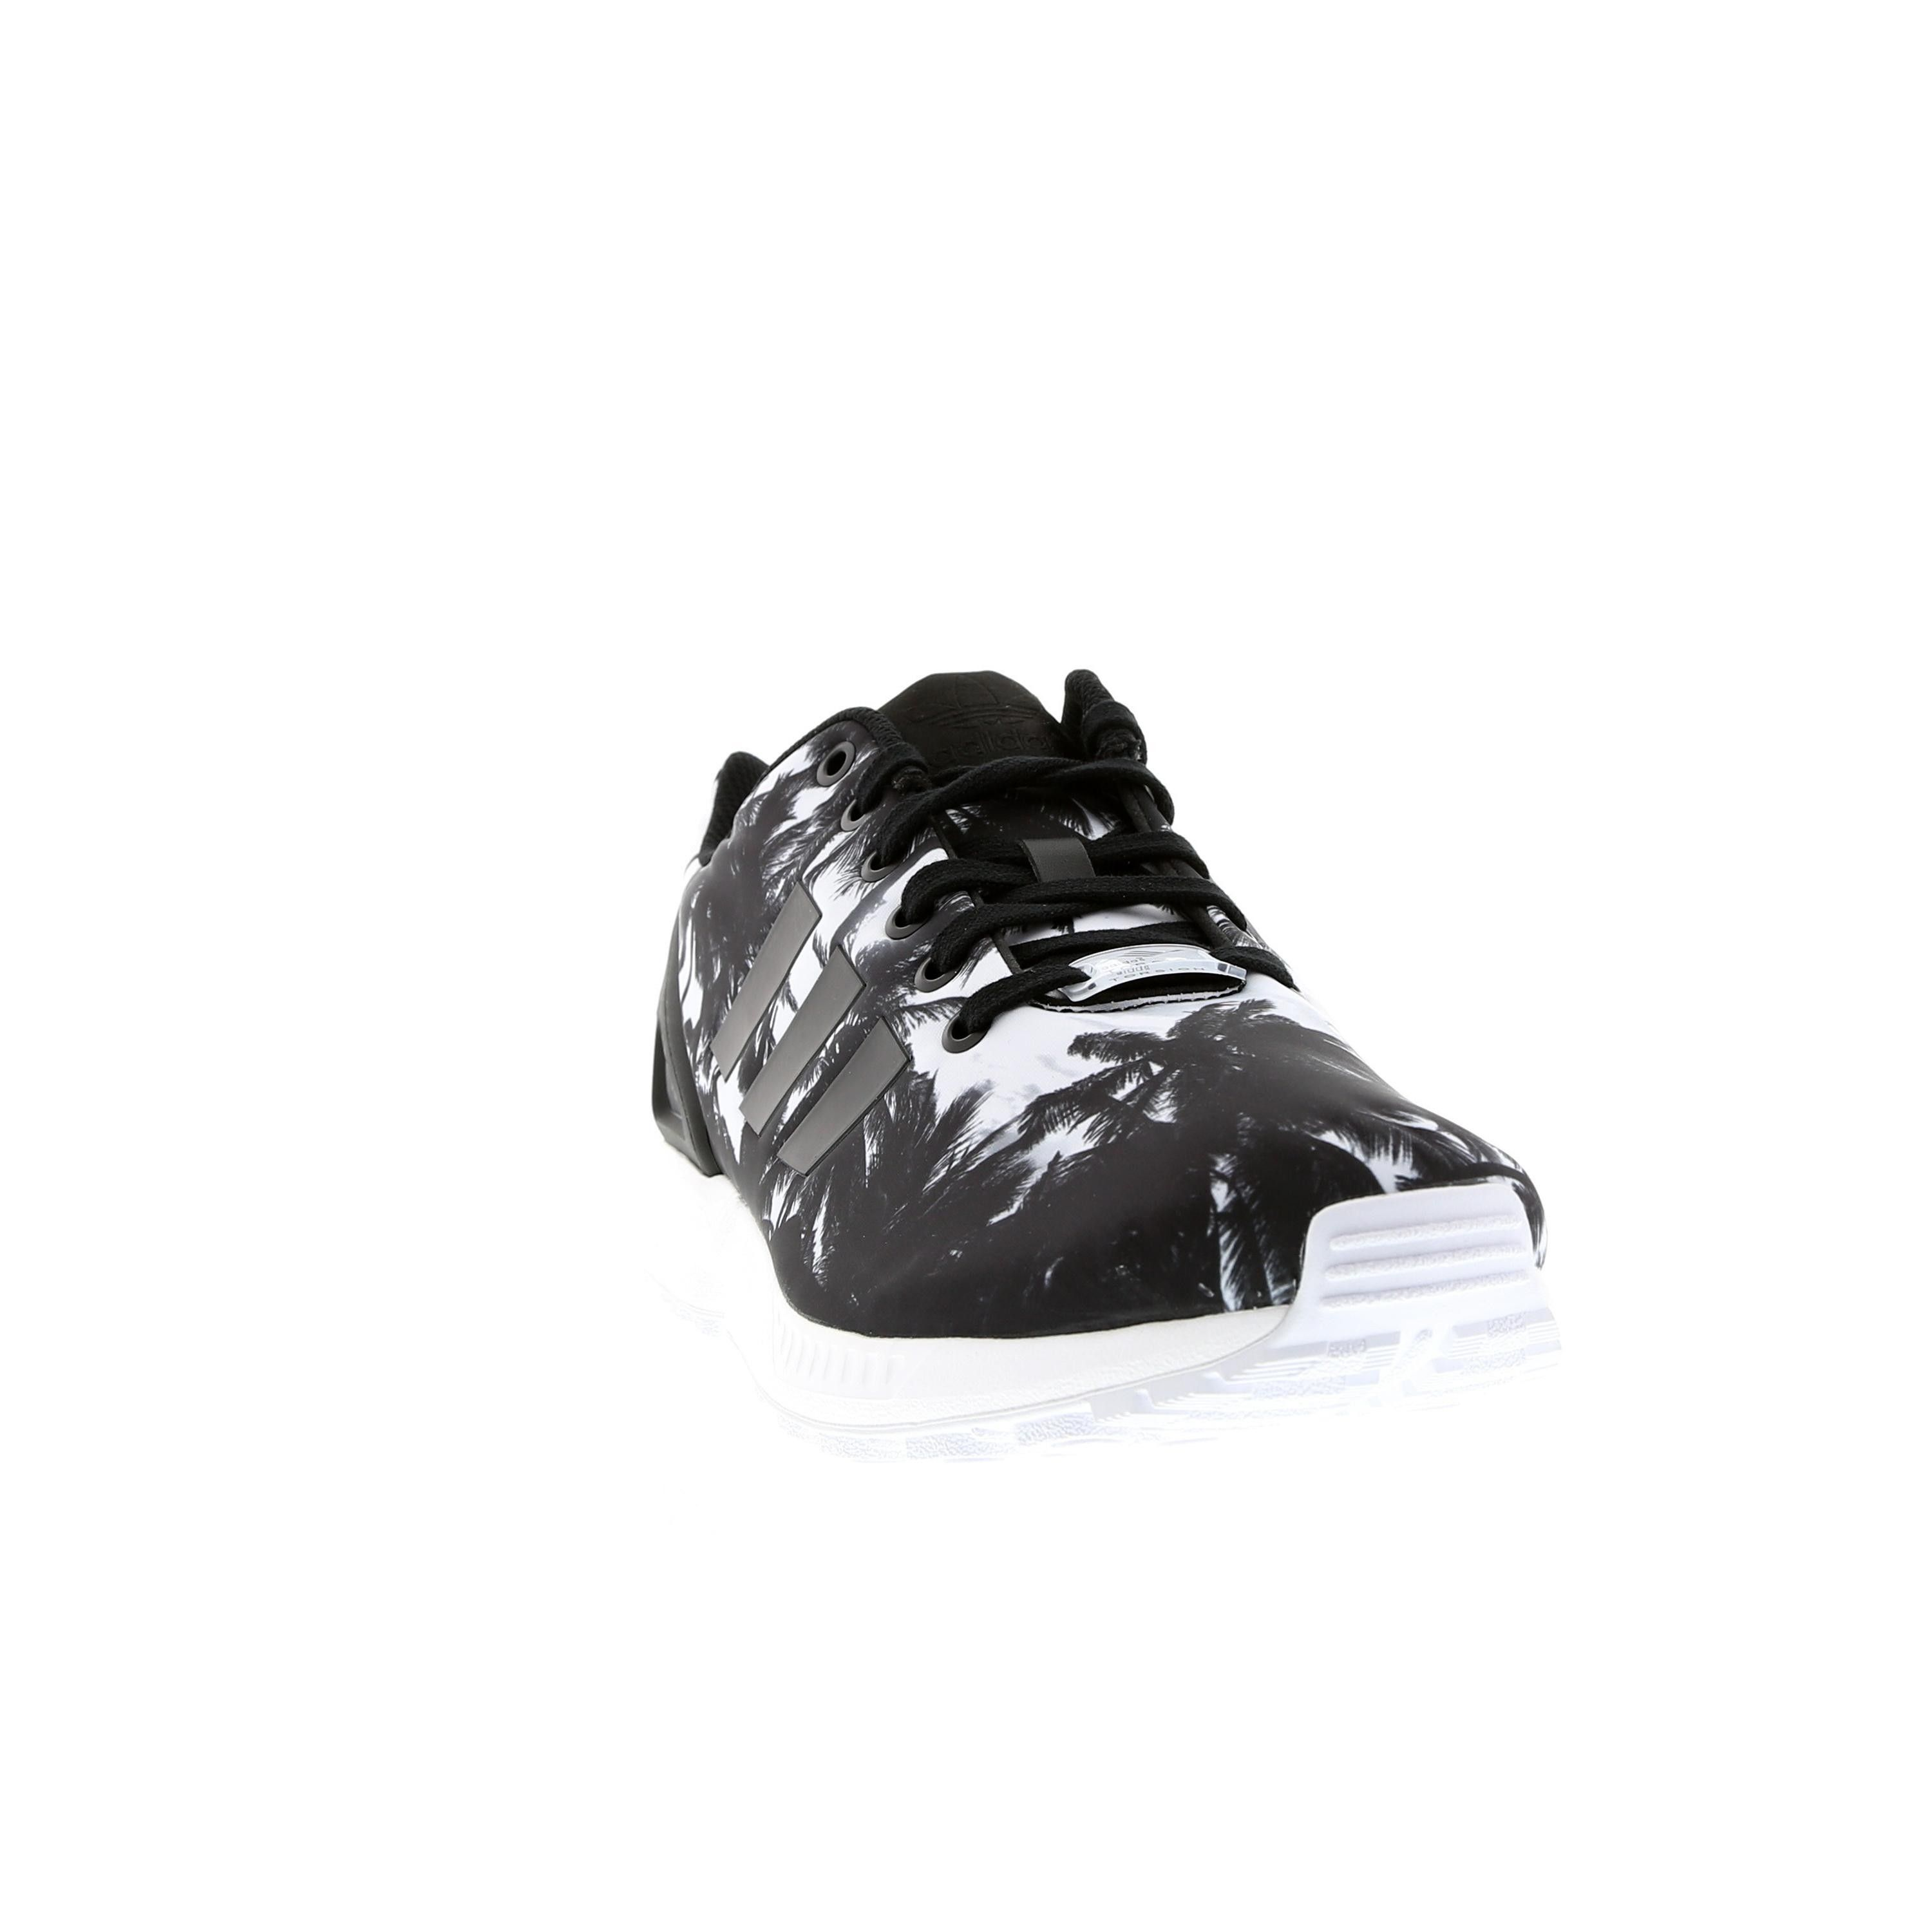 fdc9cb3698c6e Mens Adidas ZX Flux Beach Print Palm Trees Casual Shoes Black Black White  AF5306